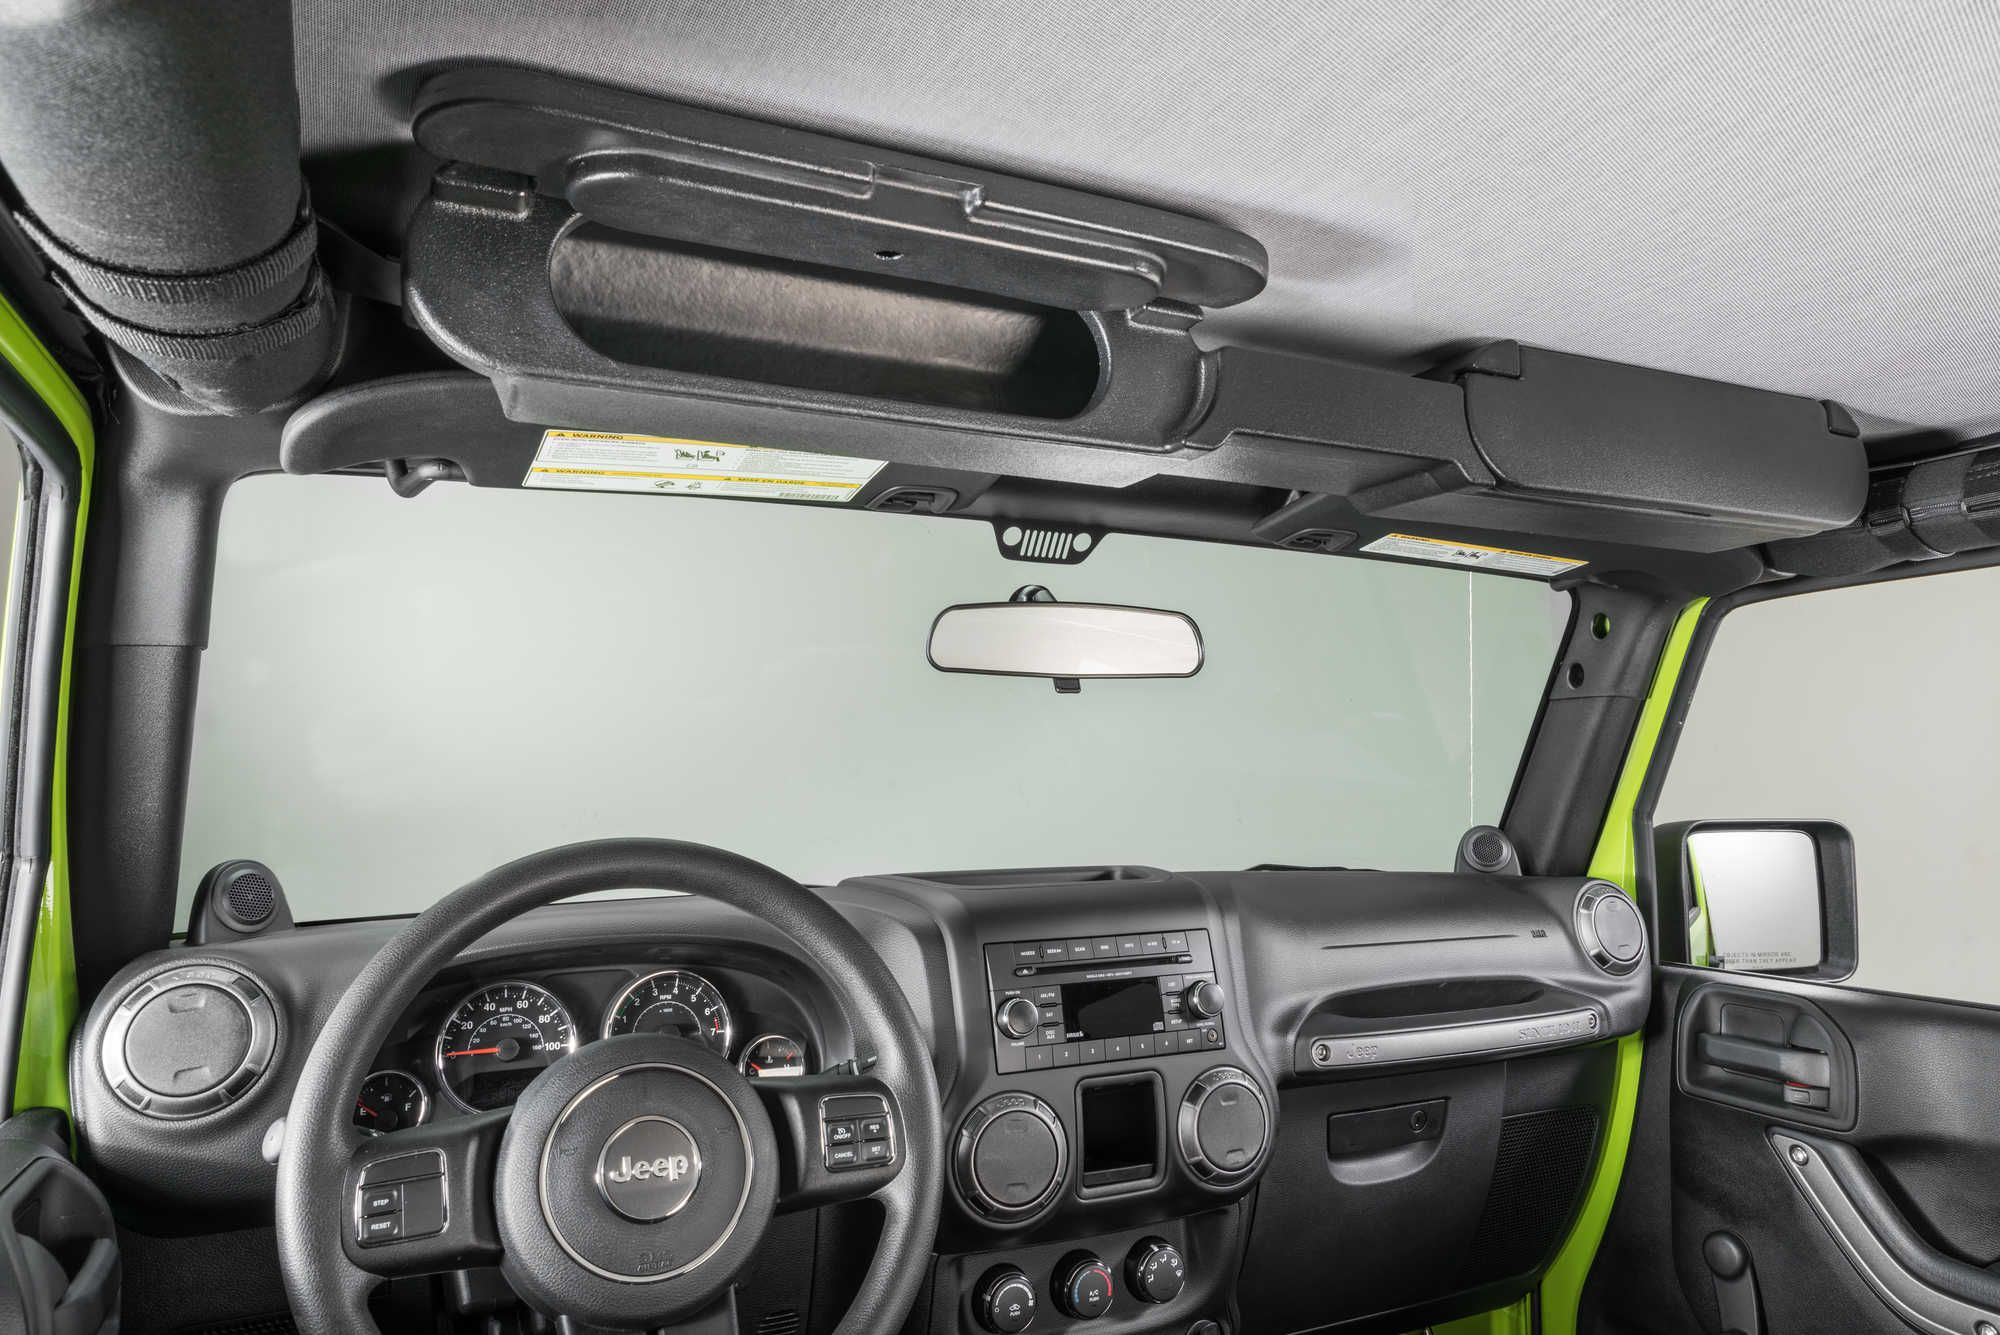 Vertically Driven Products 31700 Overhead Storage Console For 87 20 Jeep Wrangler Yj Tj Jk Jl Gladiator Jt Jeep Wrangler Yj Jeep Parts Jeep